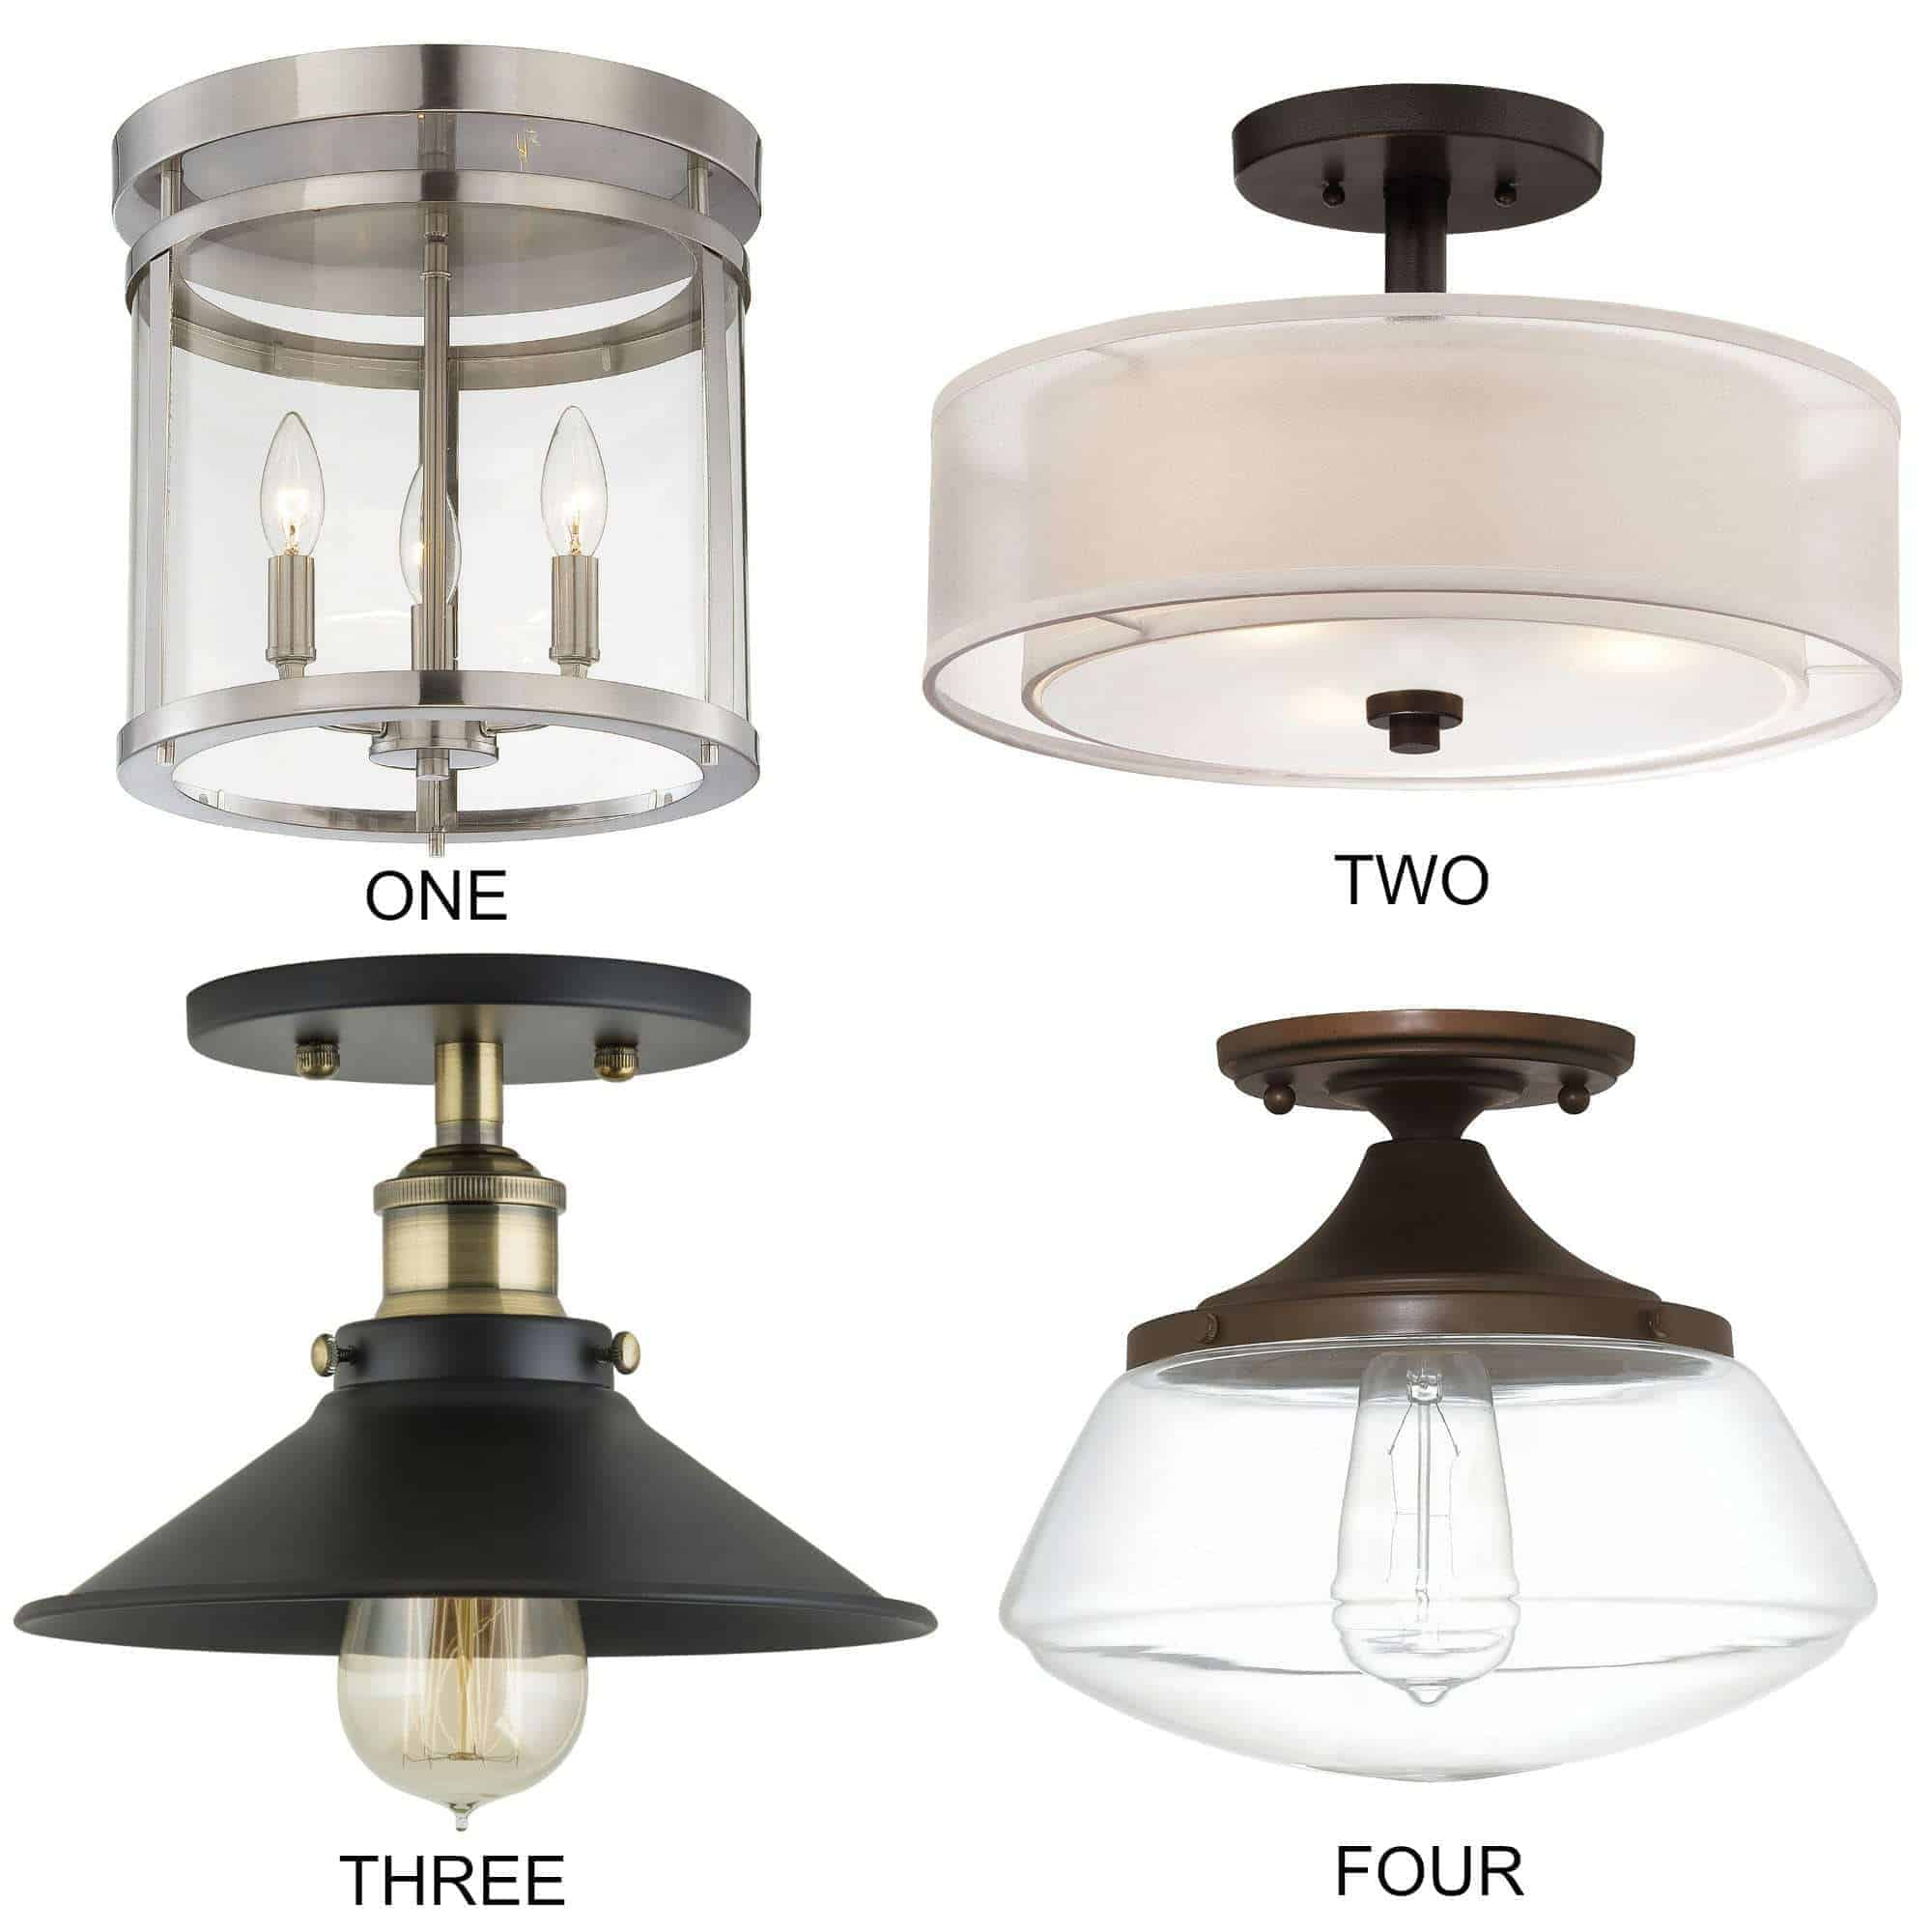 8 Flush Mount Kitchen Lighting Fixtures Ideas That Will Add That Farmhouse  Style To Your Space ...